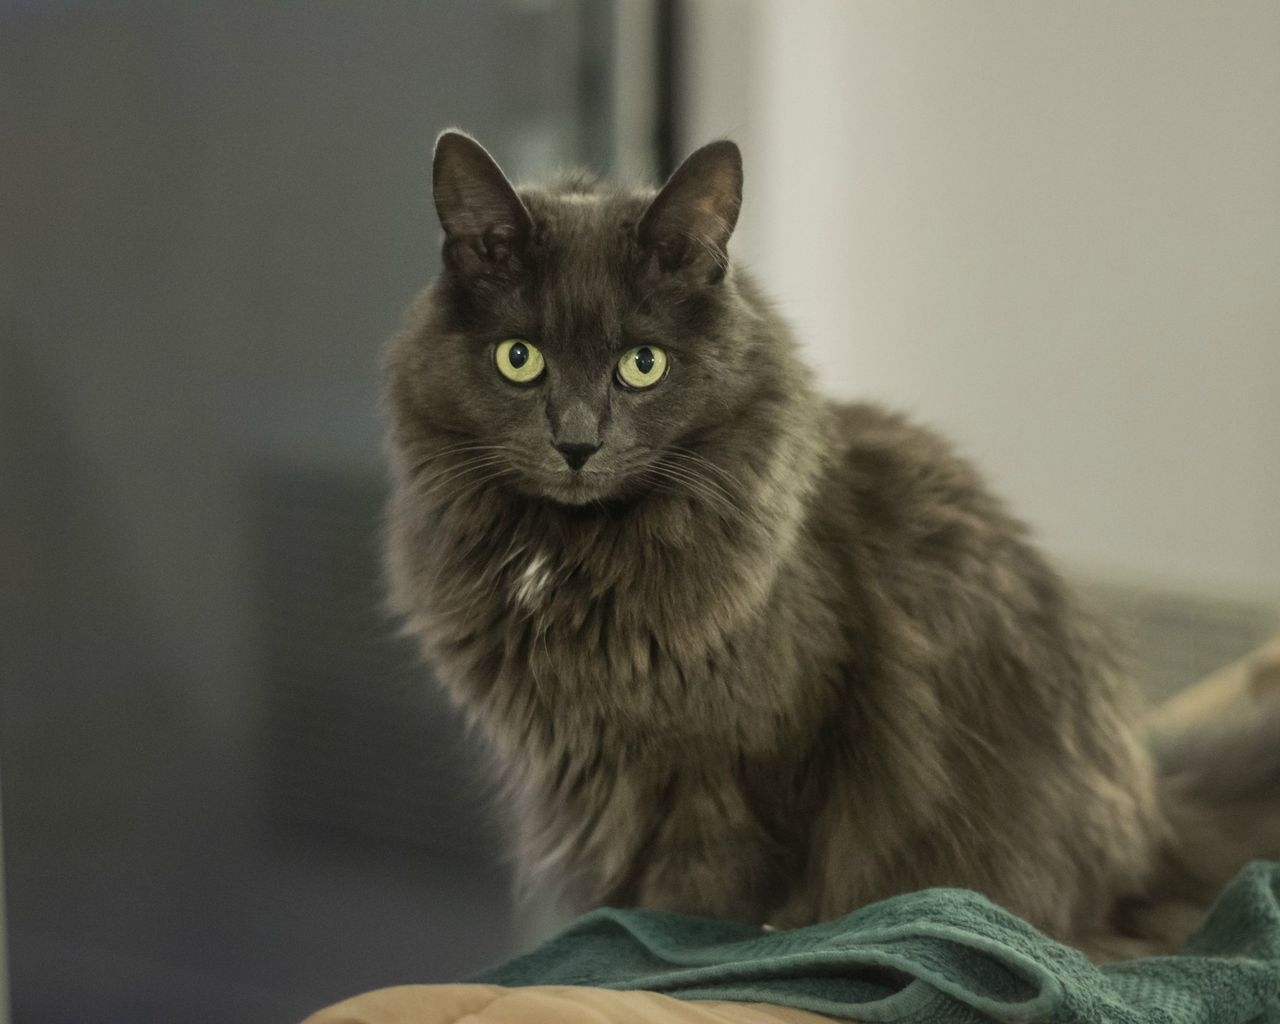 Nebelung Cat for 1280 x 1024 resolution